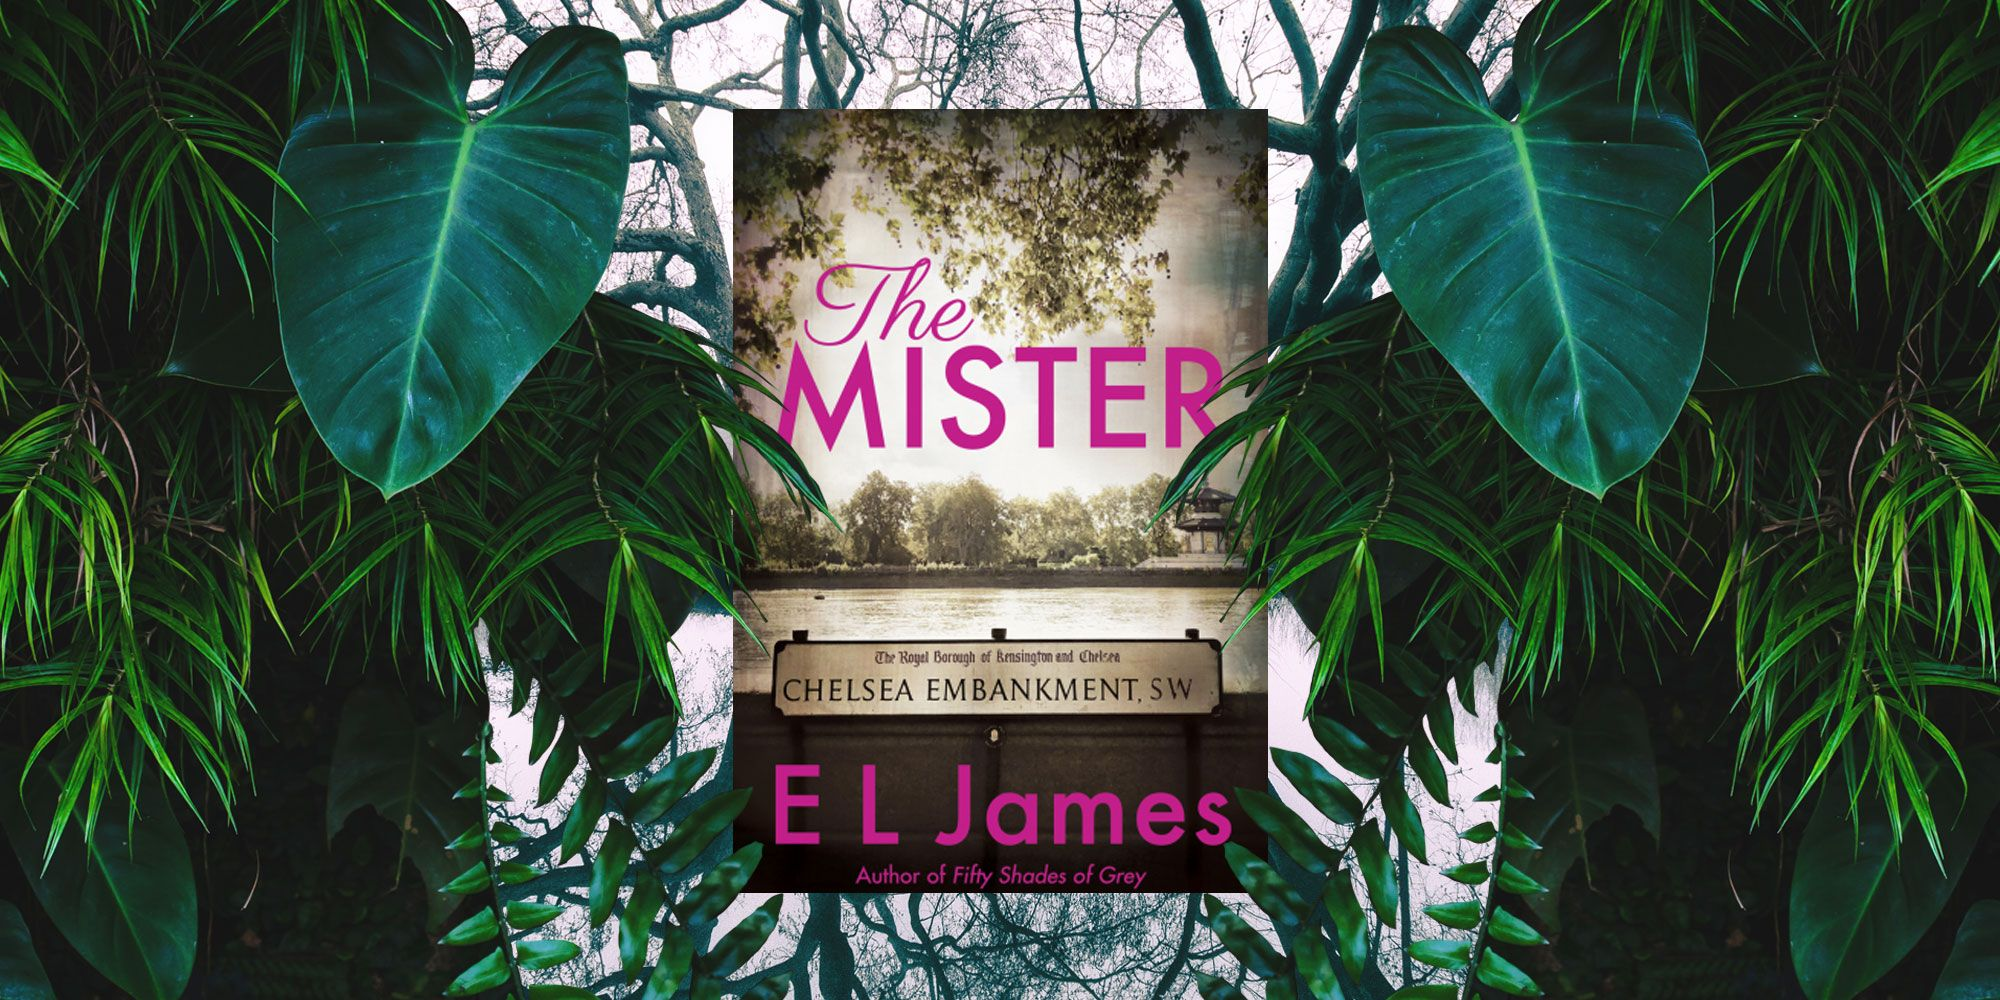 Read EL James New Book The Mister - Fifty Shades Author New Book